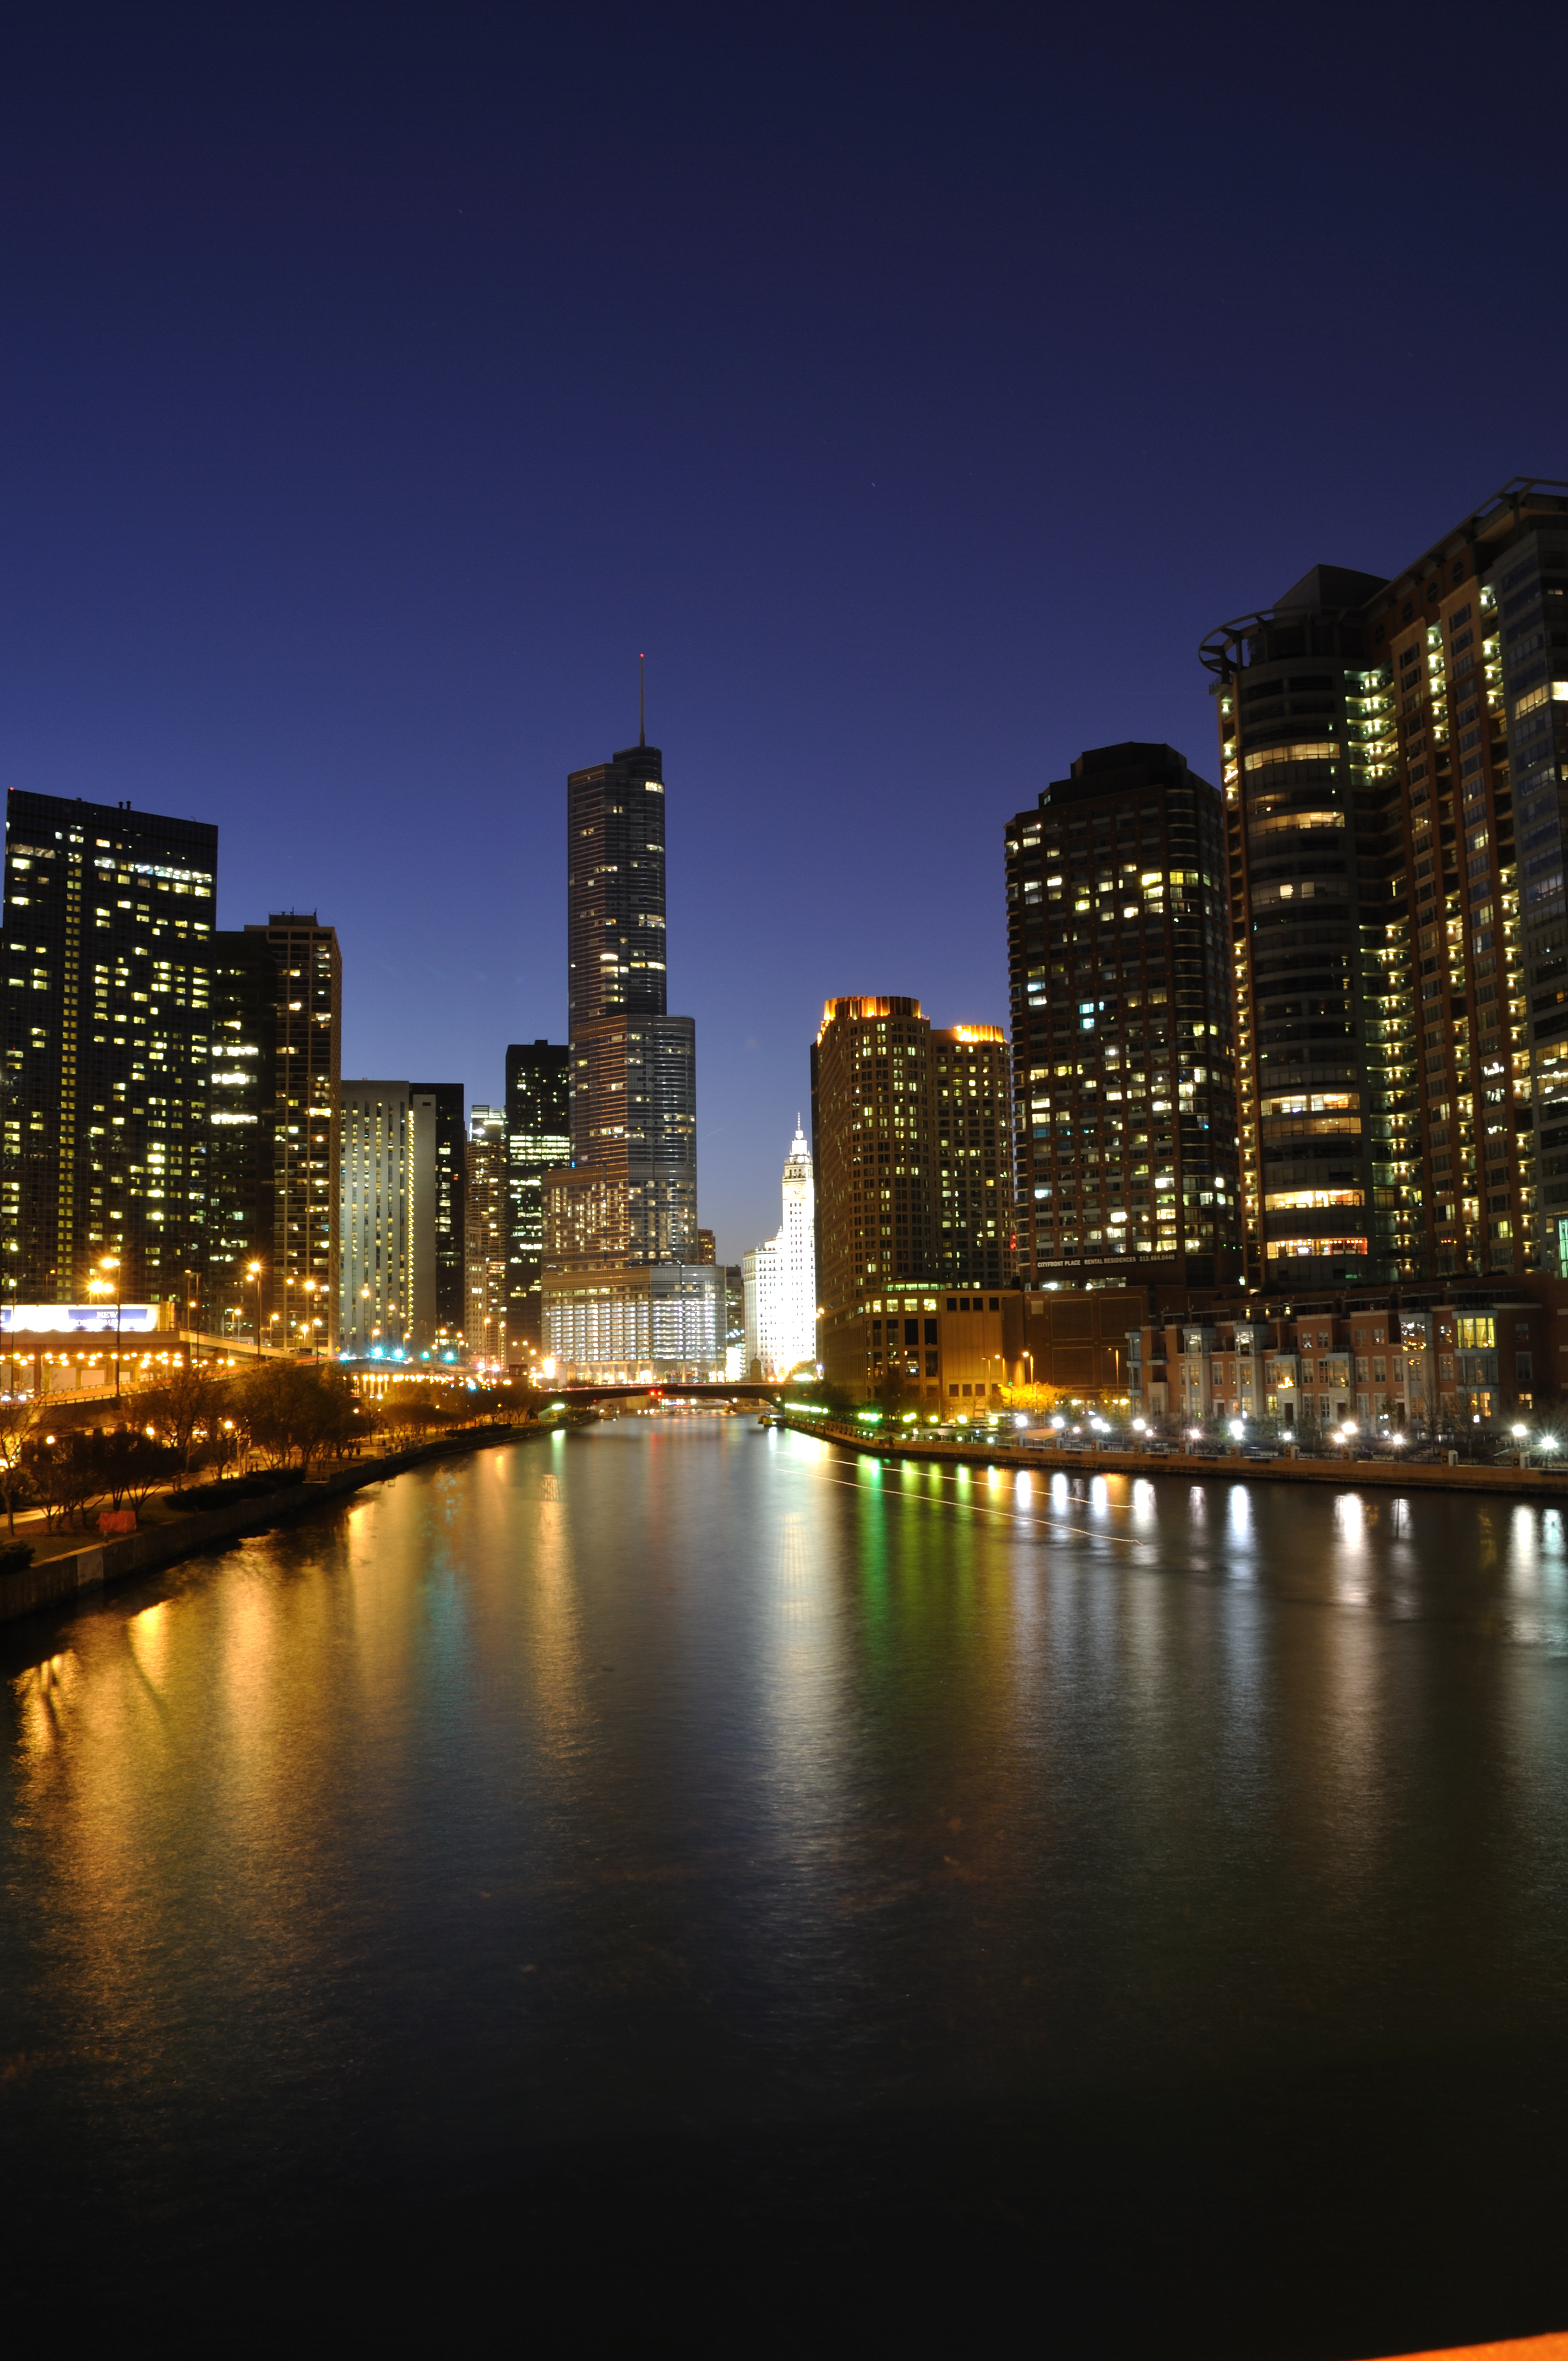 Photographing Cities At Night: Showcasing Chicago One Image